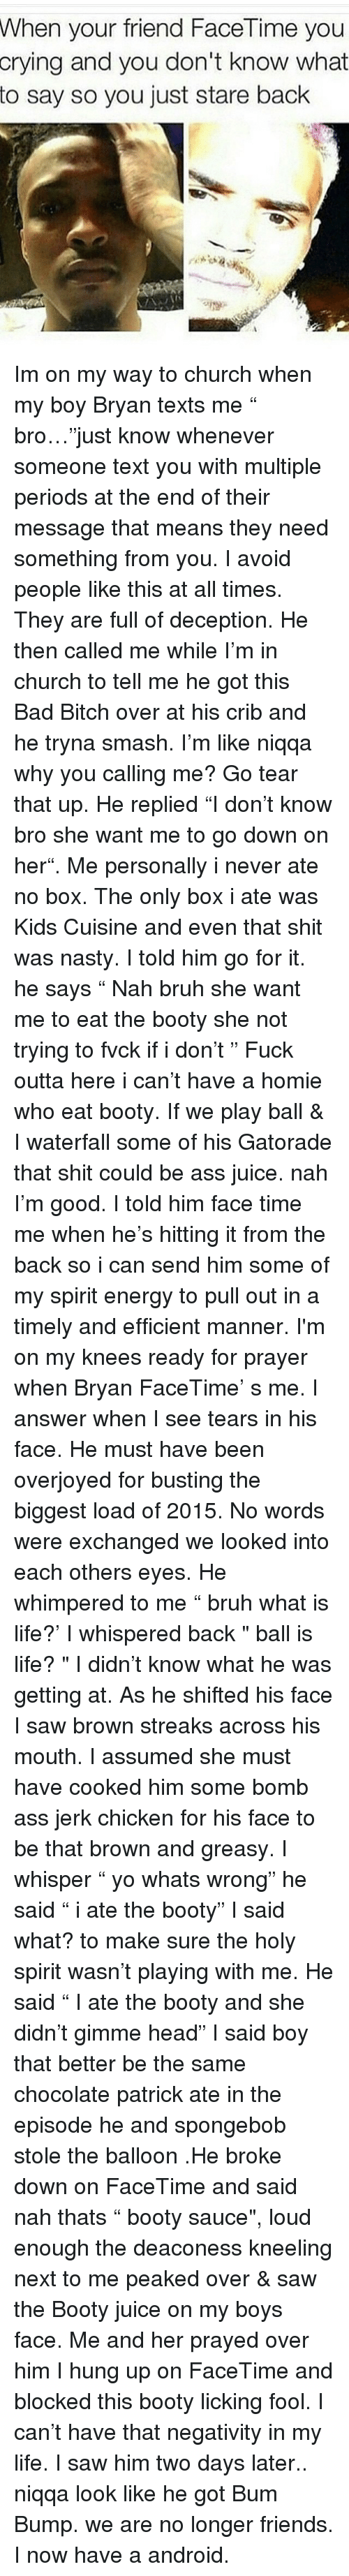 """Play Ball: When your friend FaceTime you  crying and you don't know what  to say so you just stare back  13 Im on my way to church when my boy Bryan texts me """" bro…""""just know whenever someone text you with multiple periods at the end of their message that means they need something from you. I avoid people like this at all times. They are full of deception. He then called me while I'm in church to tell me he got this Bad Bitch over at his crib and he tryna smash. I'm like niqqa why you calling me? Go tear that up. He replied """"I don't know bro she want me to go down on her"""". Me personally i never ate no box. The only box i ate was Kids Cuisine and even that shit was nasty. I told him go for it. he says """" Nah bruh she want me to eat the booty she not trying to fvck if i don't """" Fuck outta here i can't have a homie who eat booty. If we play ball & I waterfall some of his Gatorade that shit could be ass juice. nah I'm good. I told him face time me when he's hitting it from the back so i can send him some of my spirit energy to pull out in a timely and efficient manner. I'm on my knees ready for prayer when Bryan FaceTime' s me. I answer when I see tears in his face. He must have been overjoyed for busting the biggest load of 2015. No words were exchanged we looked into each others eyes. He whimpered to me """" bruh what is life?' I whispered back """" ball is life? """" I didn't know what he was getting at. As he shifted his face I saw brown streaks across his mouth. I assumed she must have cooked him some bomb ass jerk chicken for his face to be that brown and greasy. I whisper """" yo whats wrong"""" he said """" i ate the booty"""" I said what? to make sure the holy spirit wasn't playing with me. He said """" I ate the booty and she didn't gimme head"""" I said boy that better be the same chocolate patrick ate in the episode he and spongebob stole the balloon .He broke down on FaceTime and said nah thats """" booty sauce"""", loud enough the deaconess kneeling next to me peaked over & saw the Booty j"""